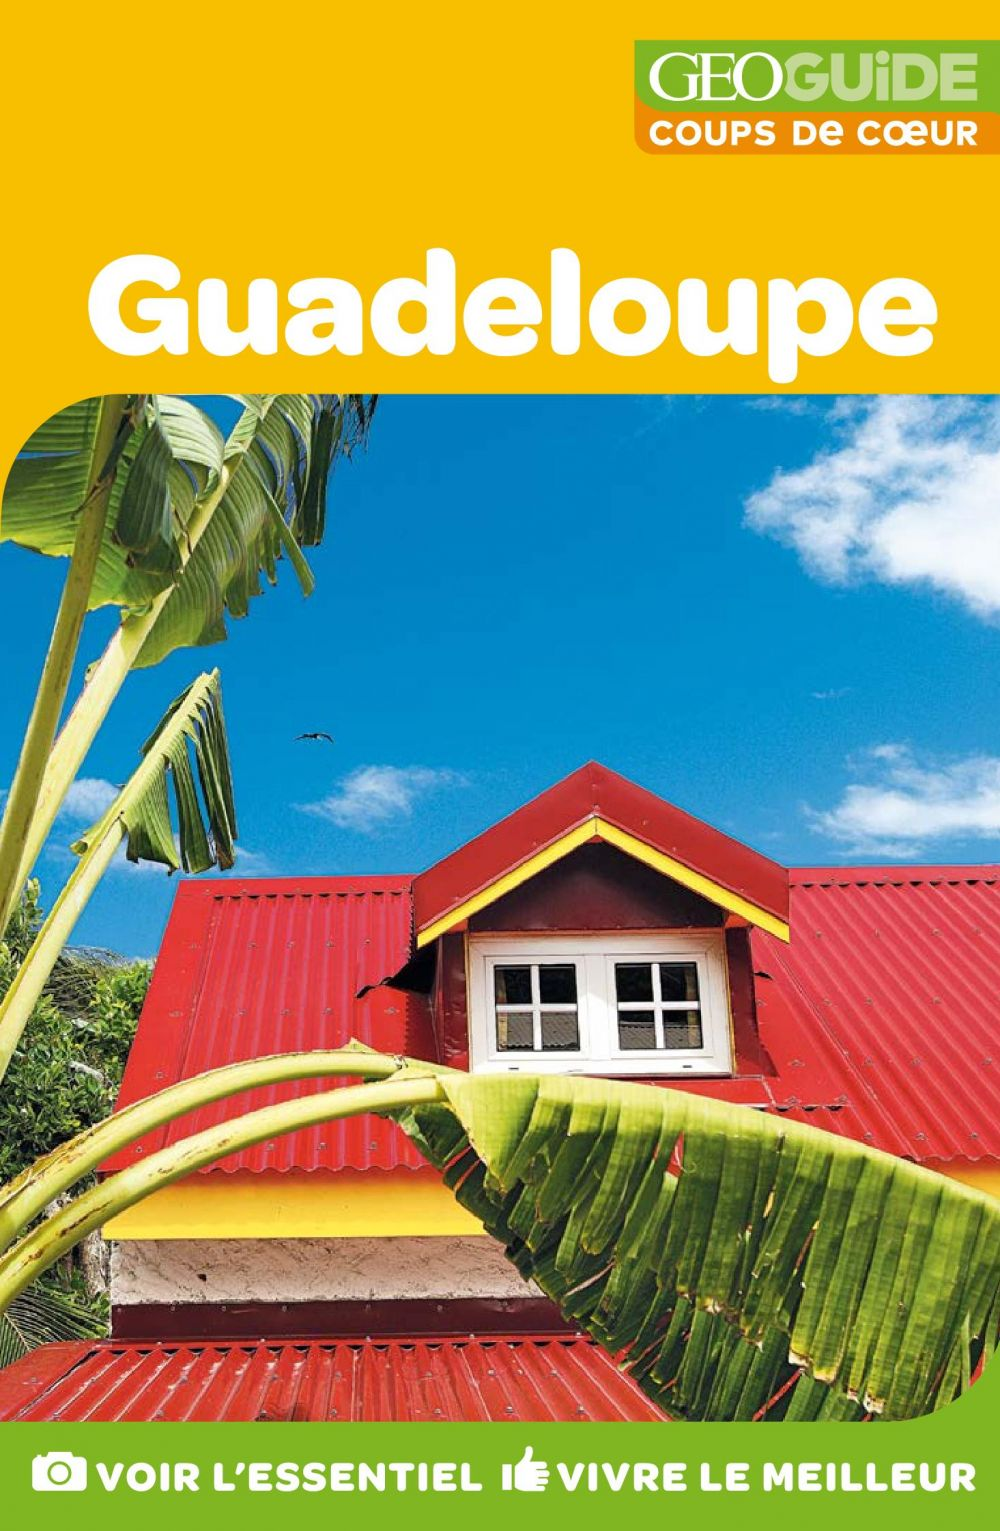 GEOguide Coups de coeur Guadeloupe